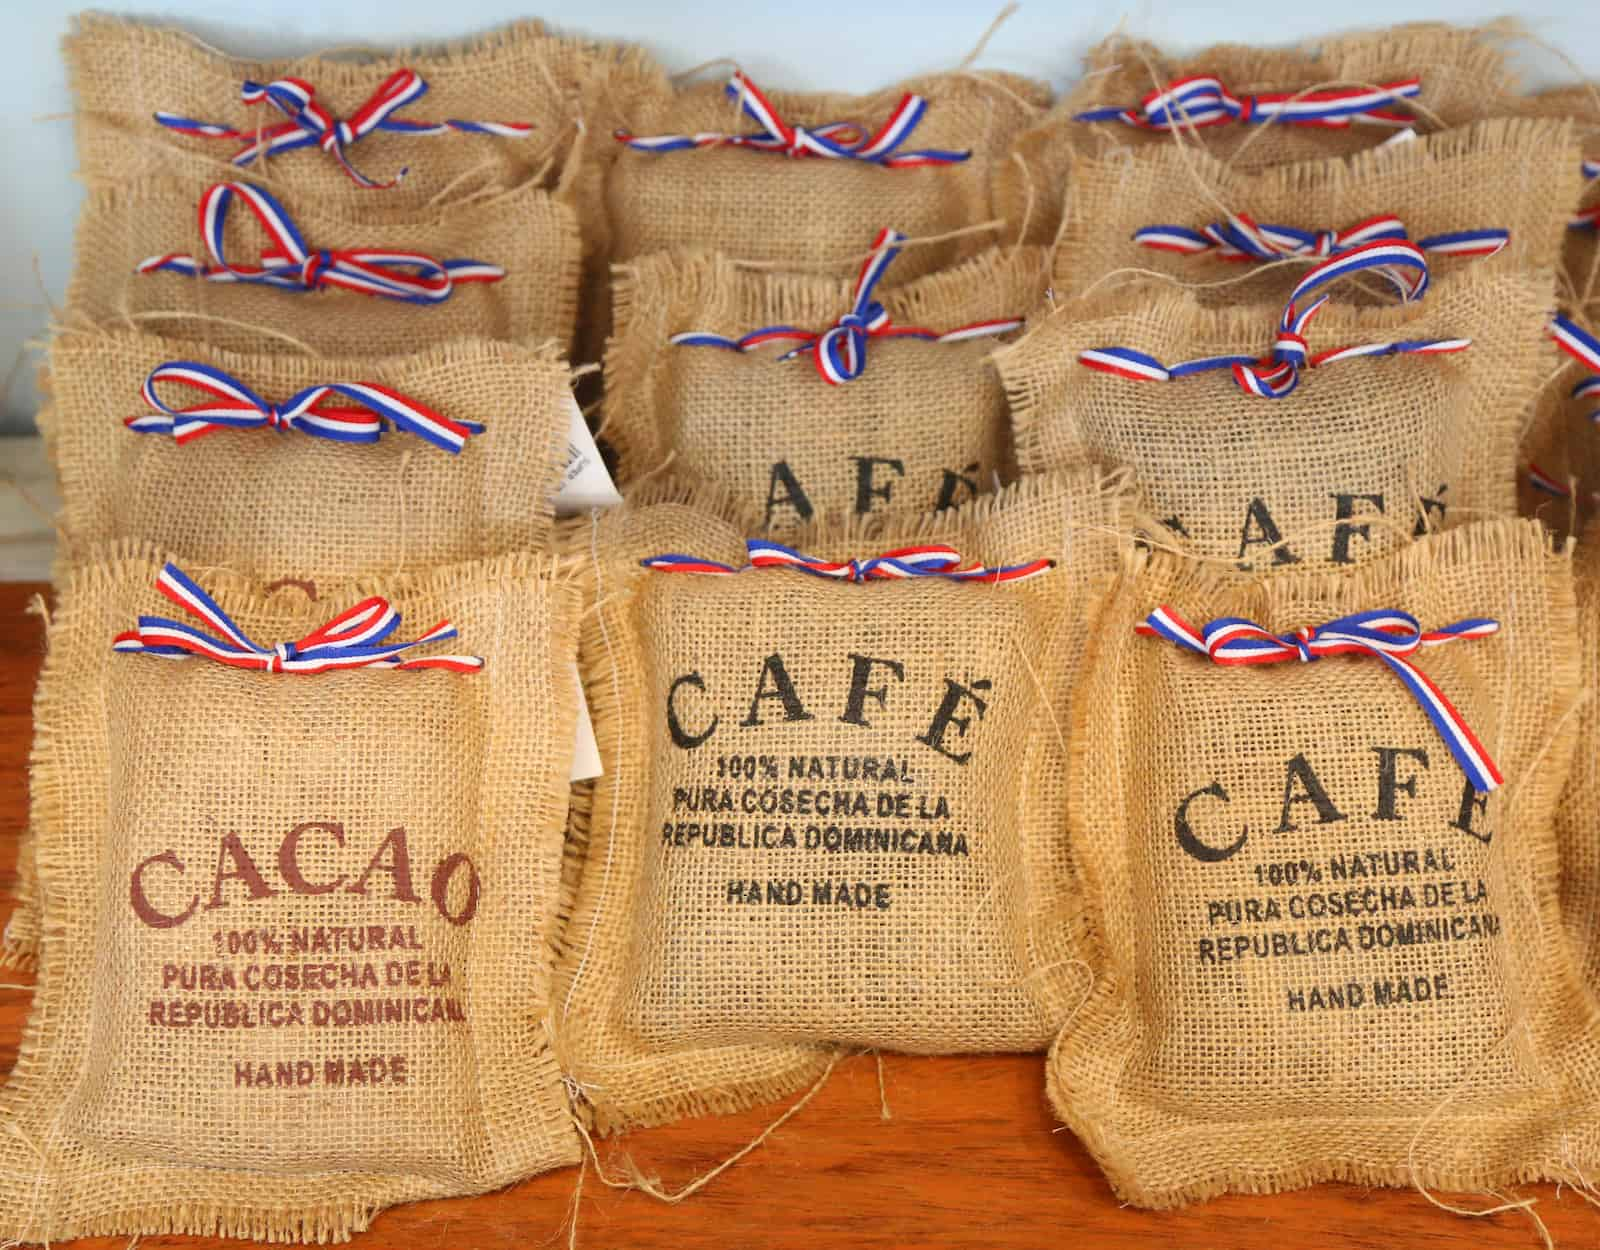 Dominican Coffee bags